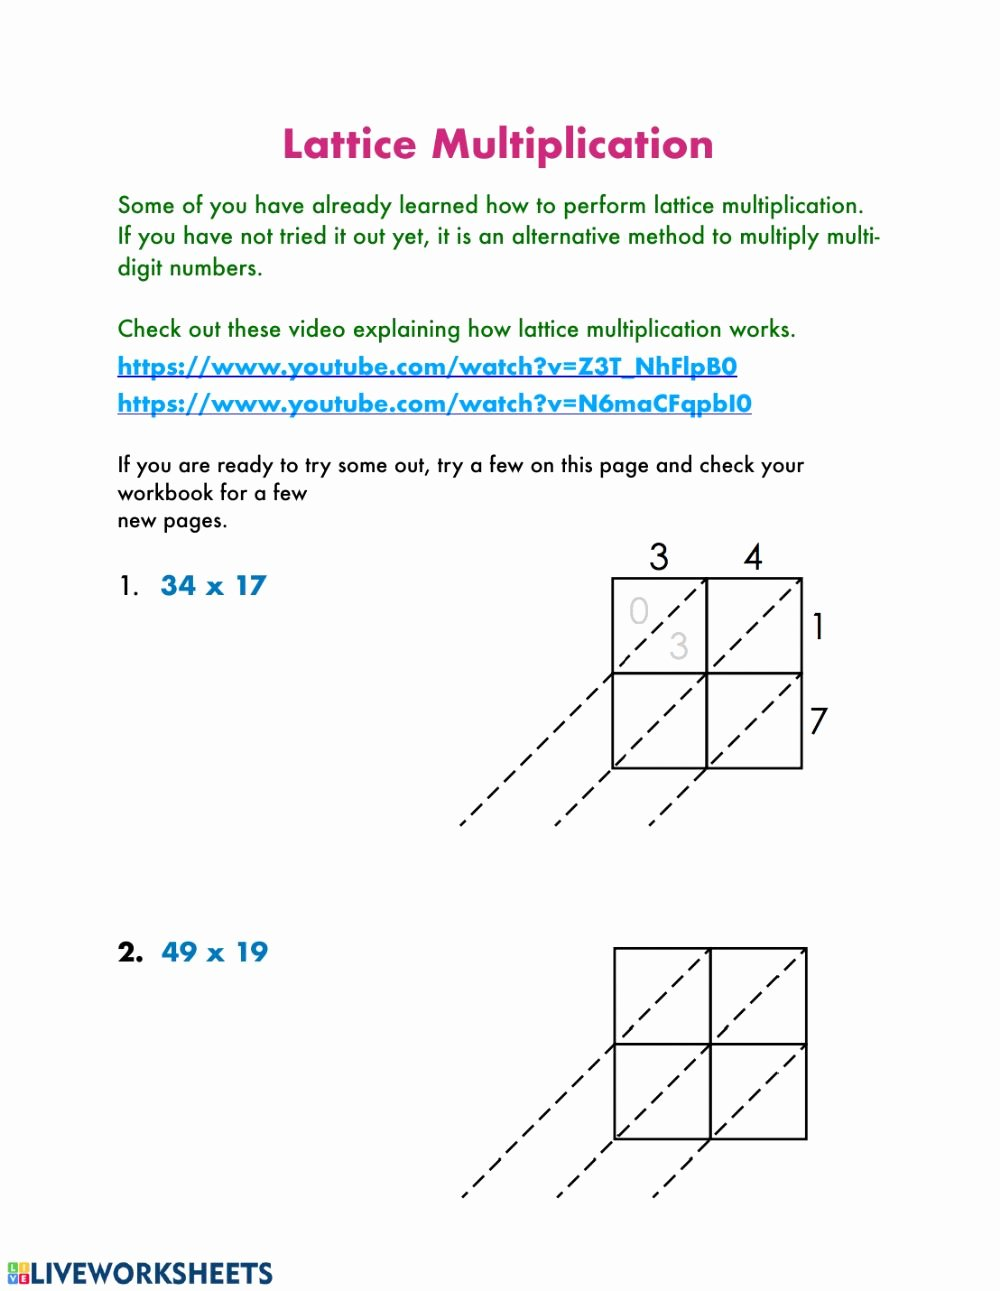 Lattice Multiplication Worksheets Best Of Lattice Multiplication Multiplication Worksheet